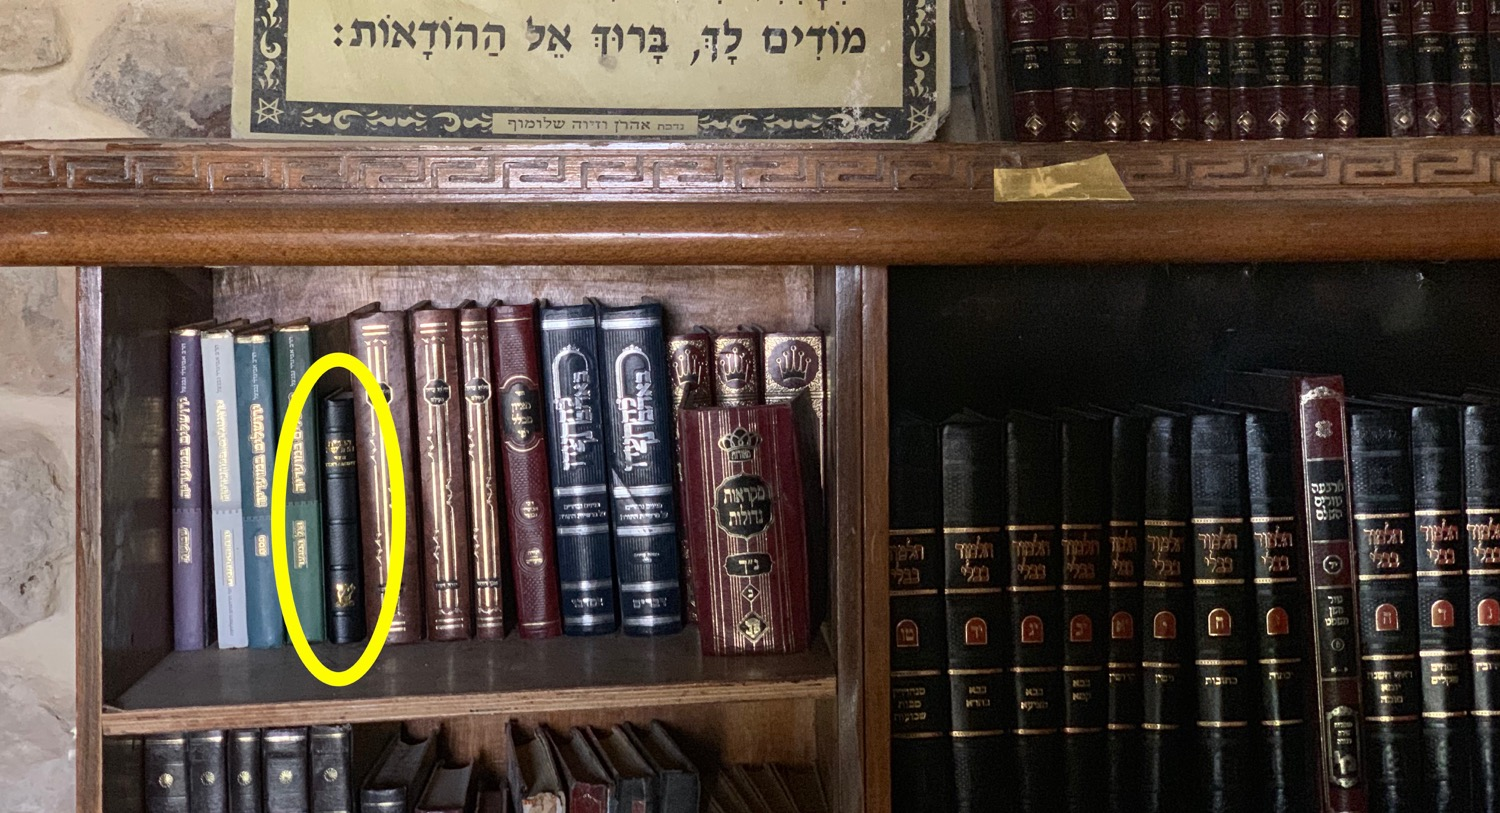 Famine Relief = A Strategically Placed New Testament in a Hebron Synagogue near the Tomb of Jesse